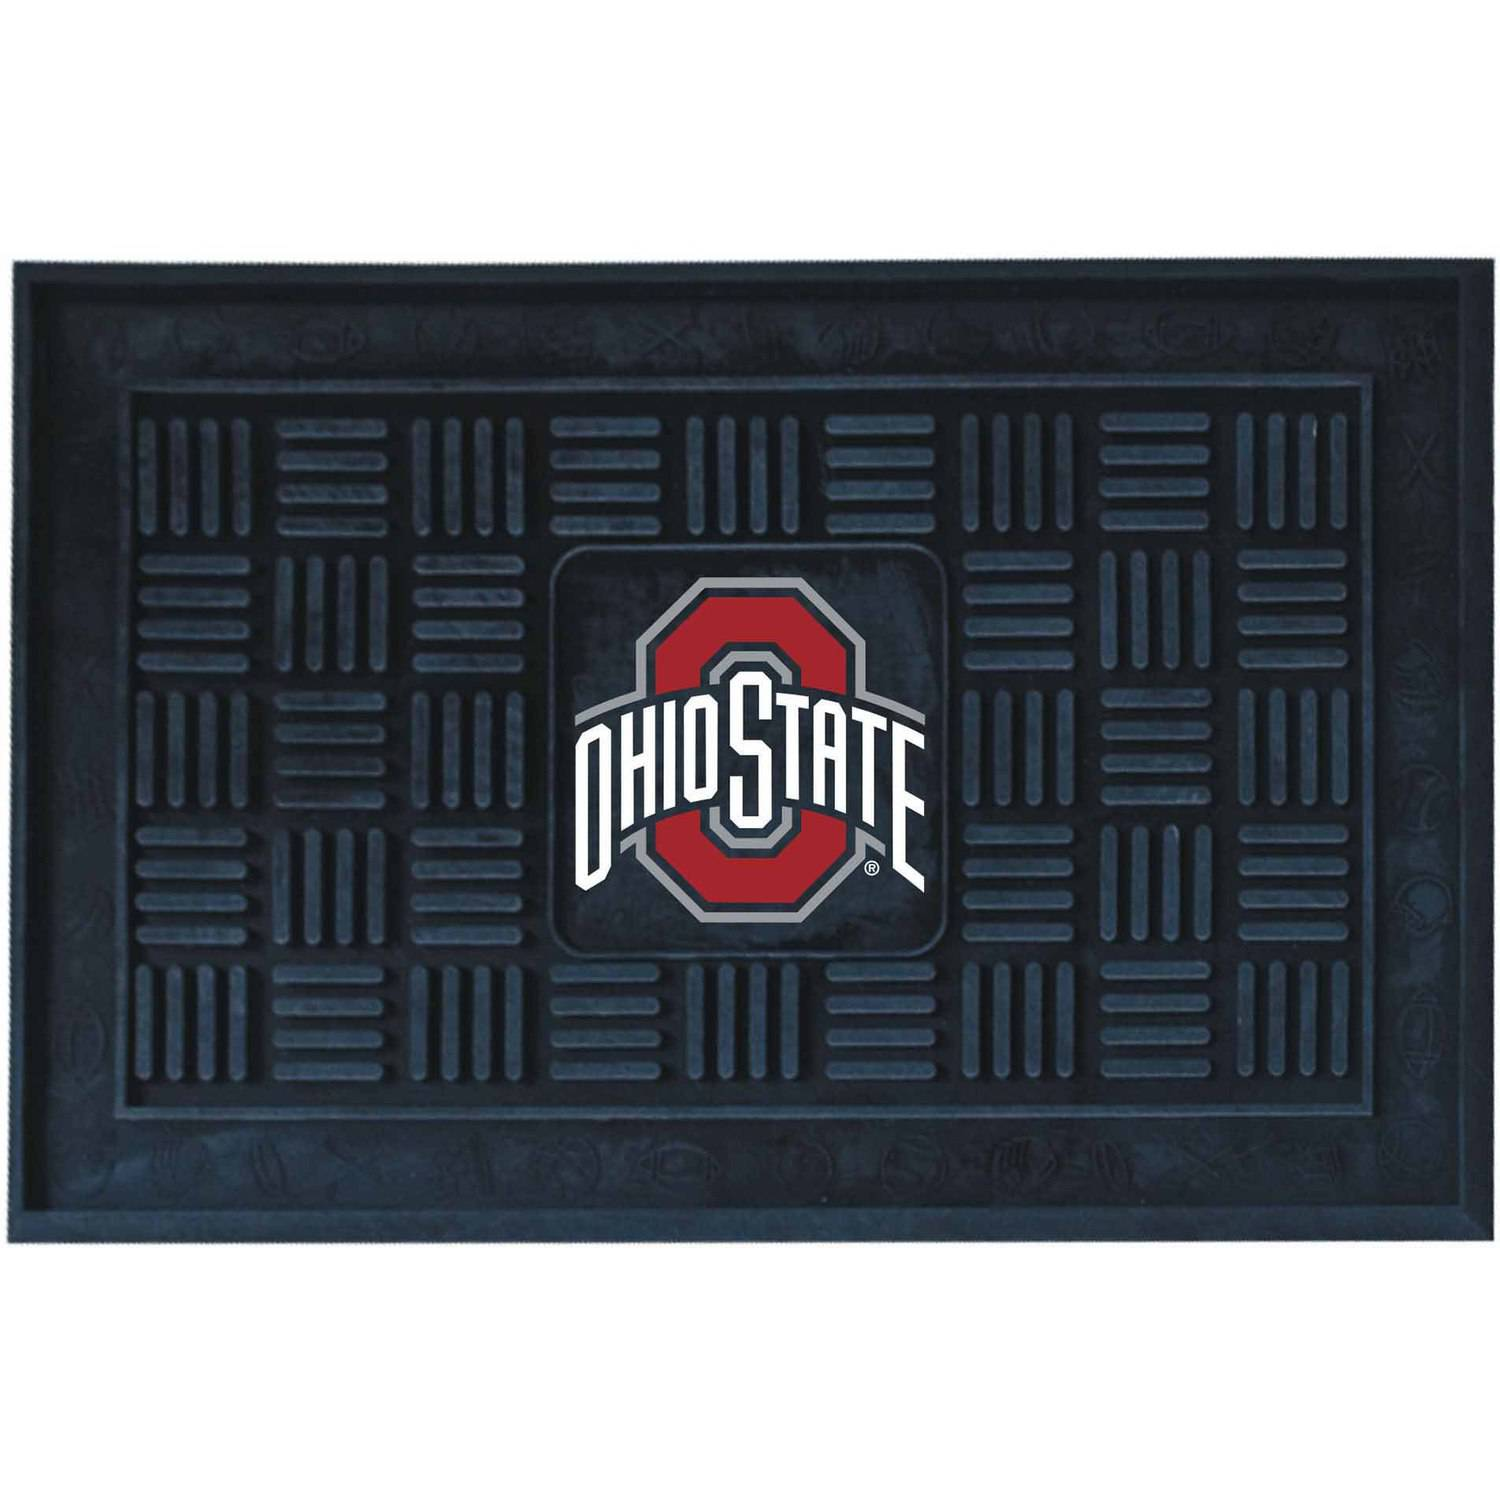 Ohio State University Medallion Door Mat